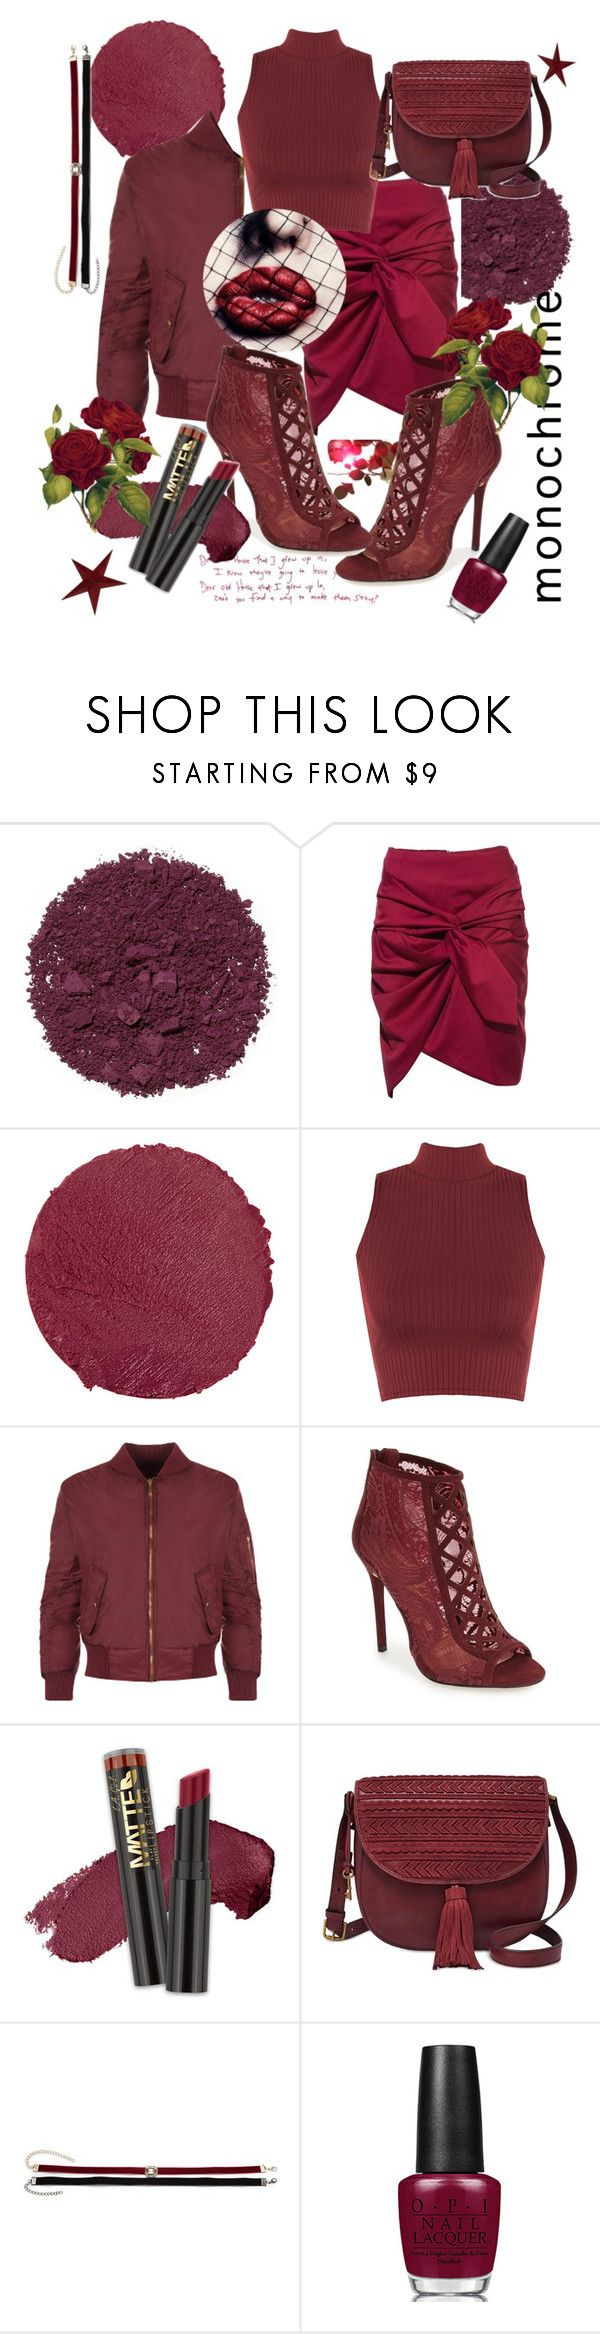 """red like the wine"" by ninasater ❤ liked on Polyvore featuring Illamasqua, Lipstick Queen, WearAll, Daya, FOSSIL, Cara, OPI and monochrome"